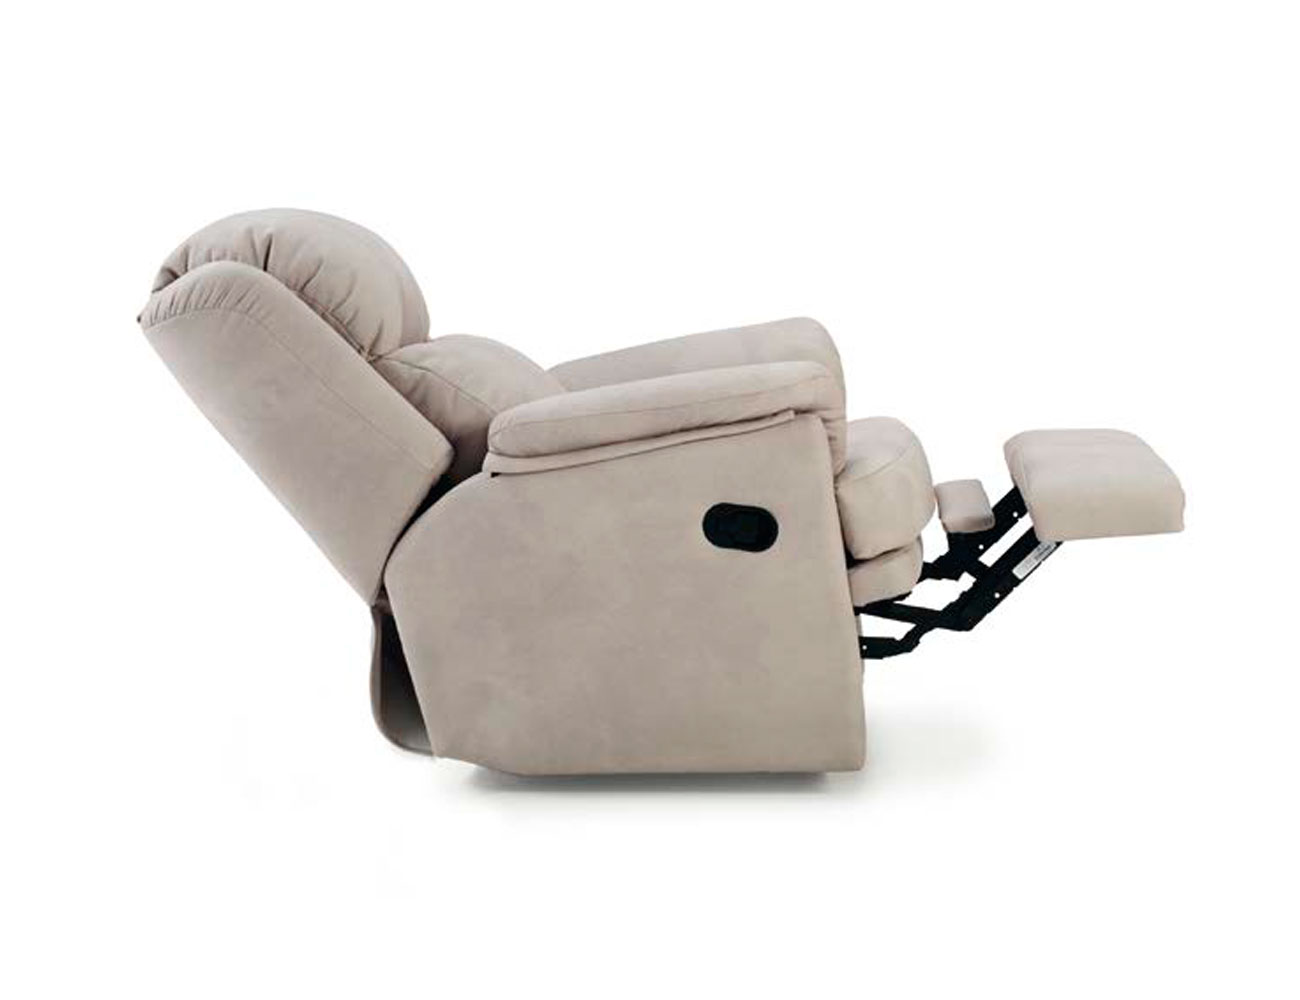 Sillon relax manual palanca esther 121